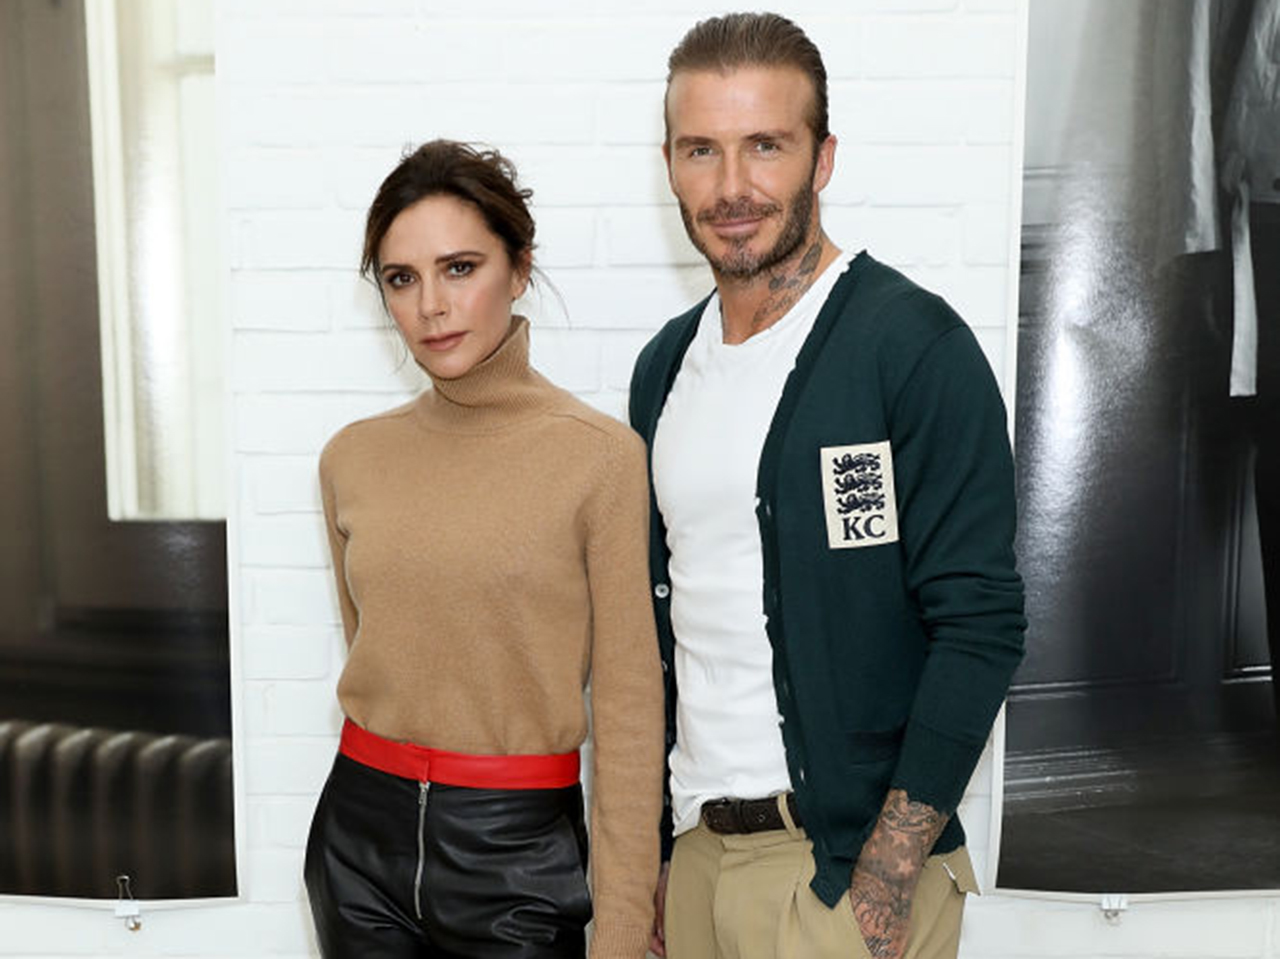 Victoria and David Beckham attend the Kent & Curwen SS18 LFWM Presentation on June 11, 2017 in London, England